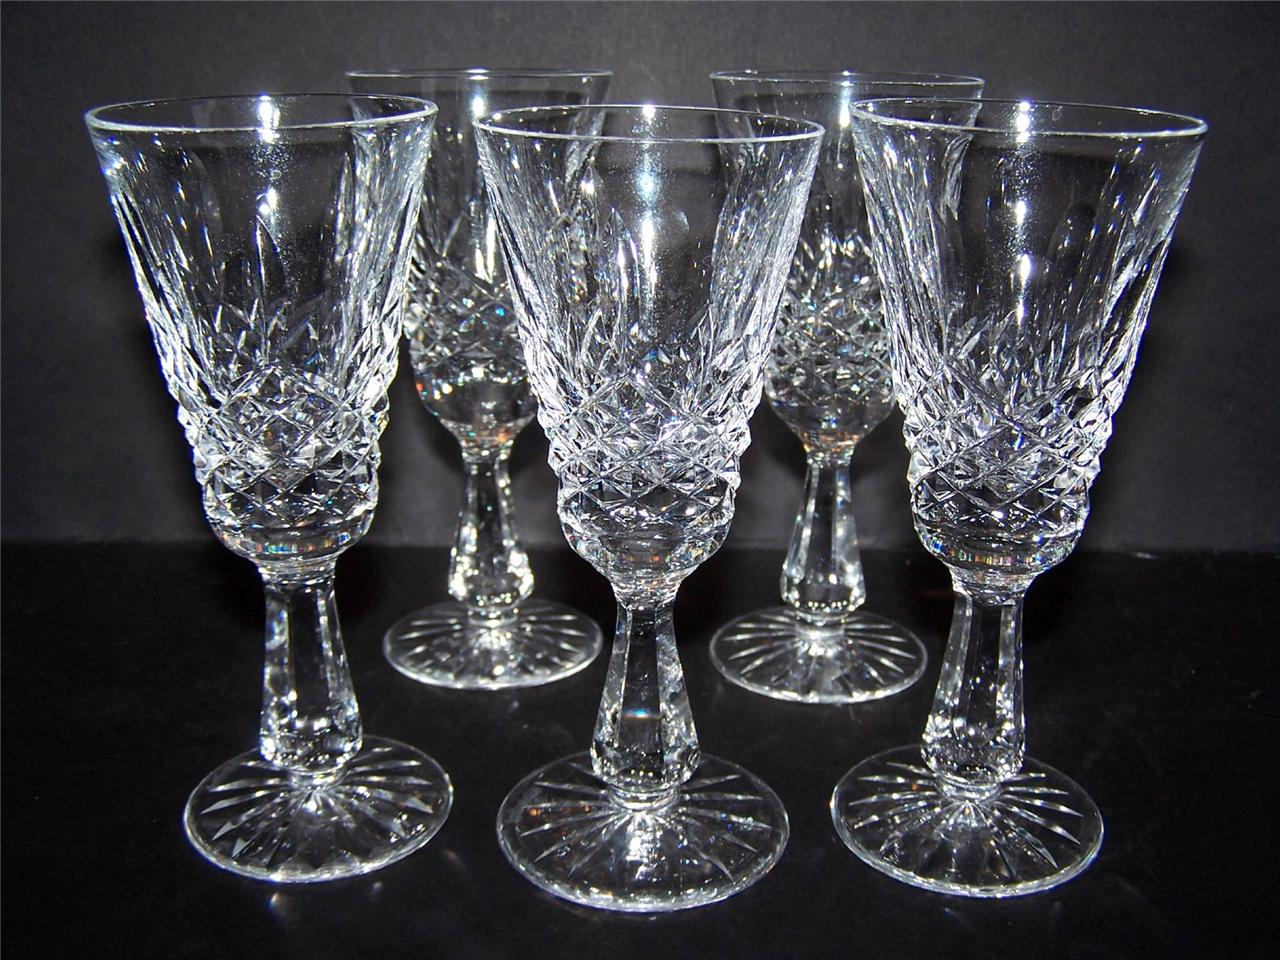 SET OF 5 WATERFORD IRISH CRYSTAL kenmore kylemore SHERRY ...